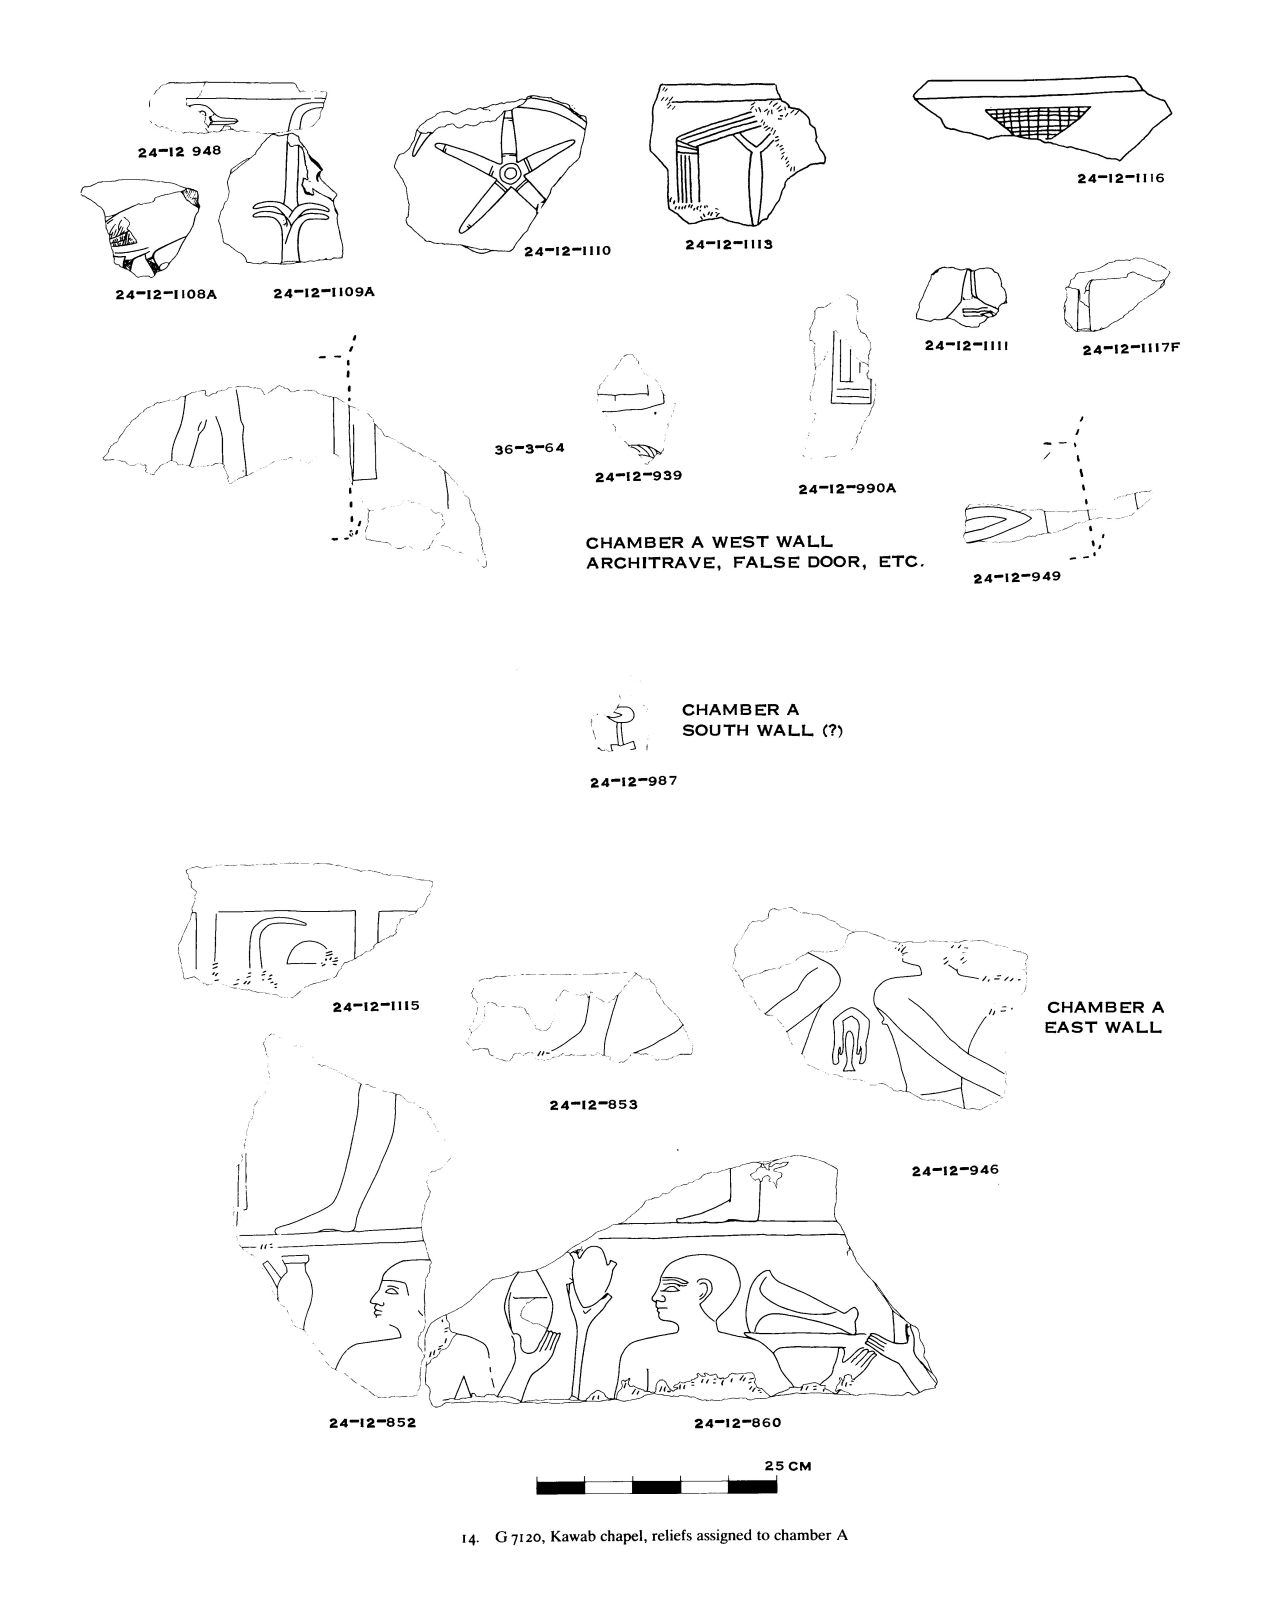 Drawings: G 7120: relief assigned to chamber A